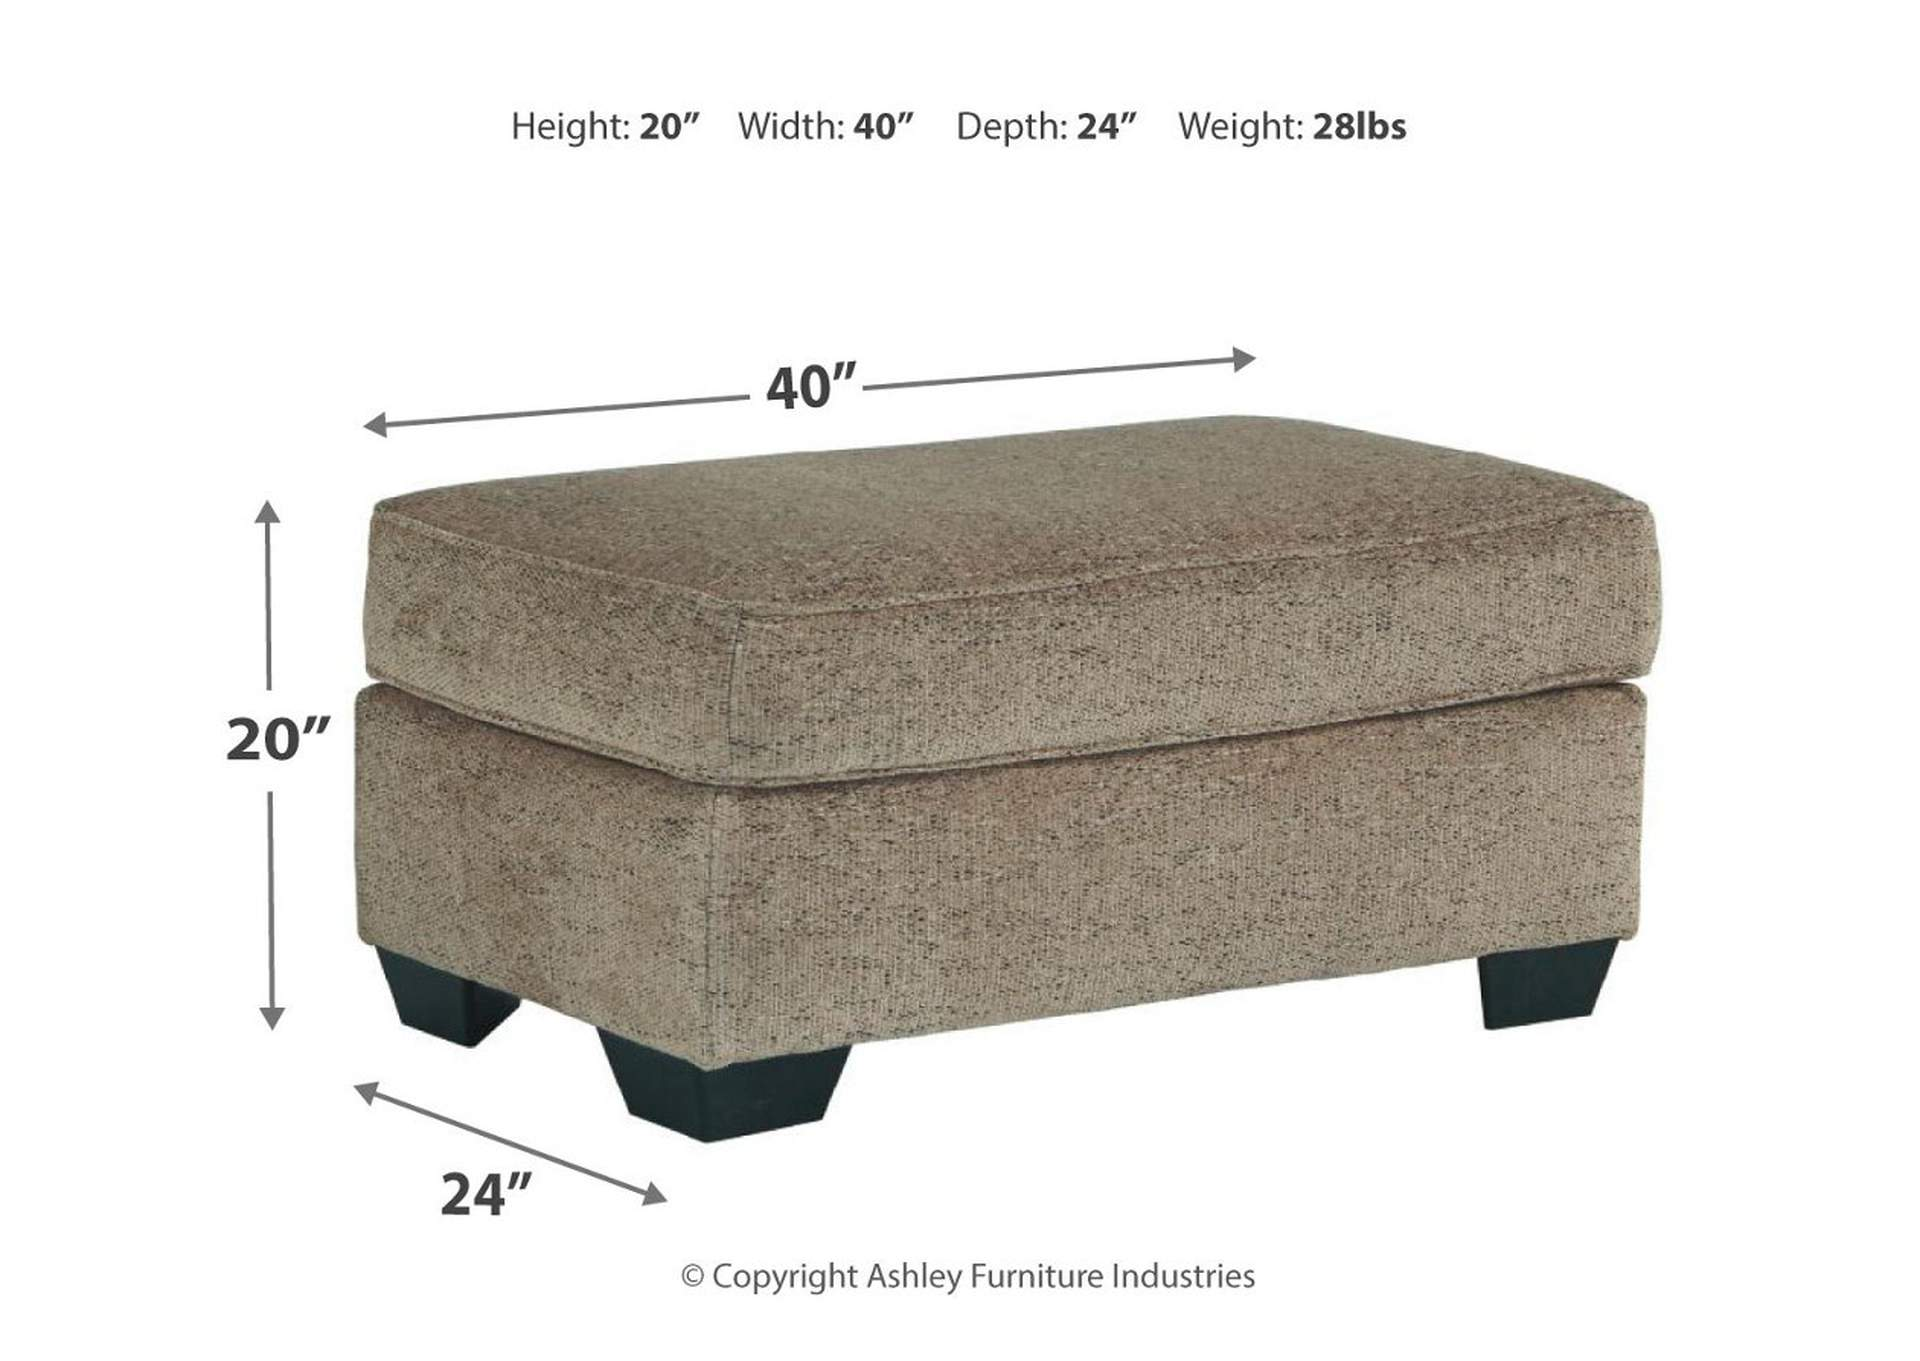 Fehmarn Toffee Ottoman,Signature Design By Ashley